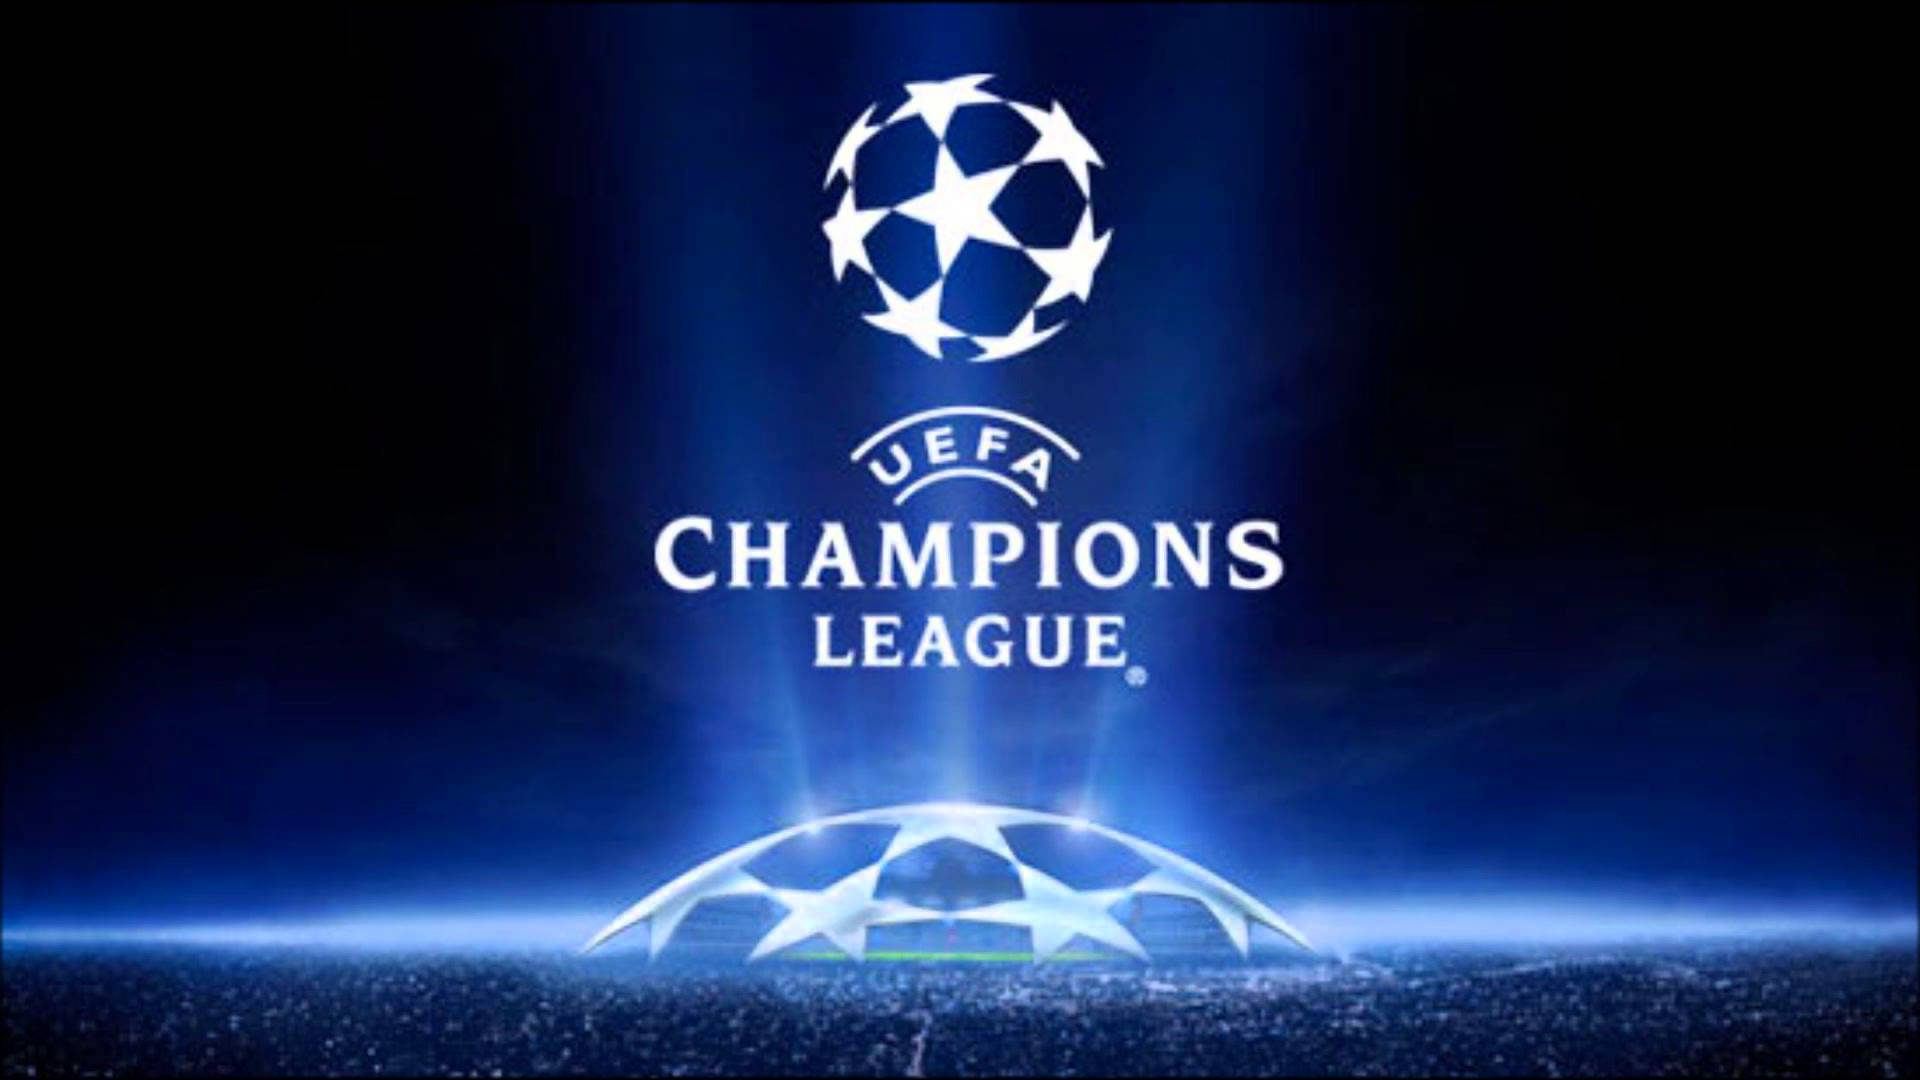 Champions League Free Tv